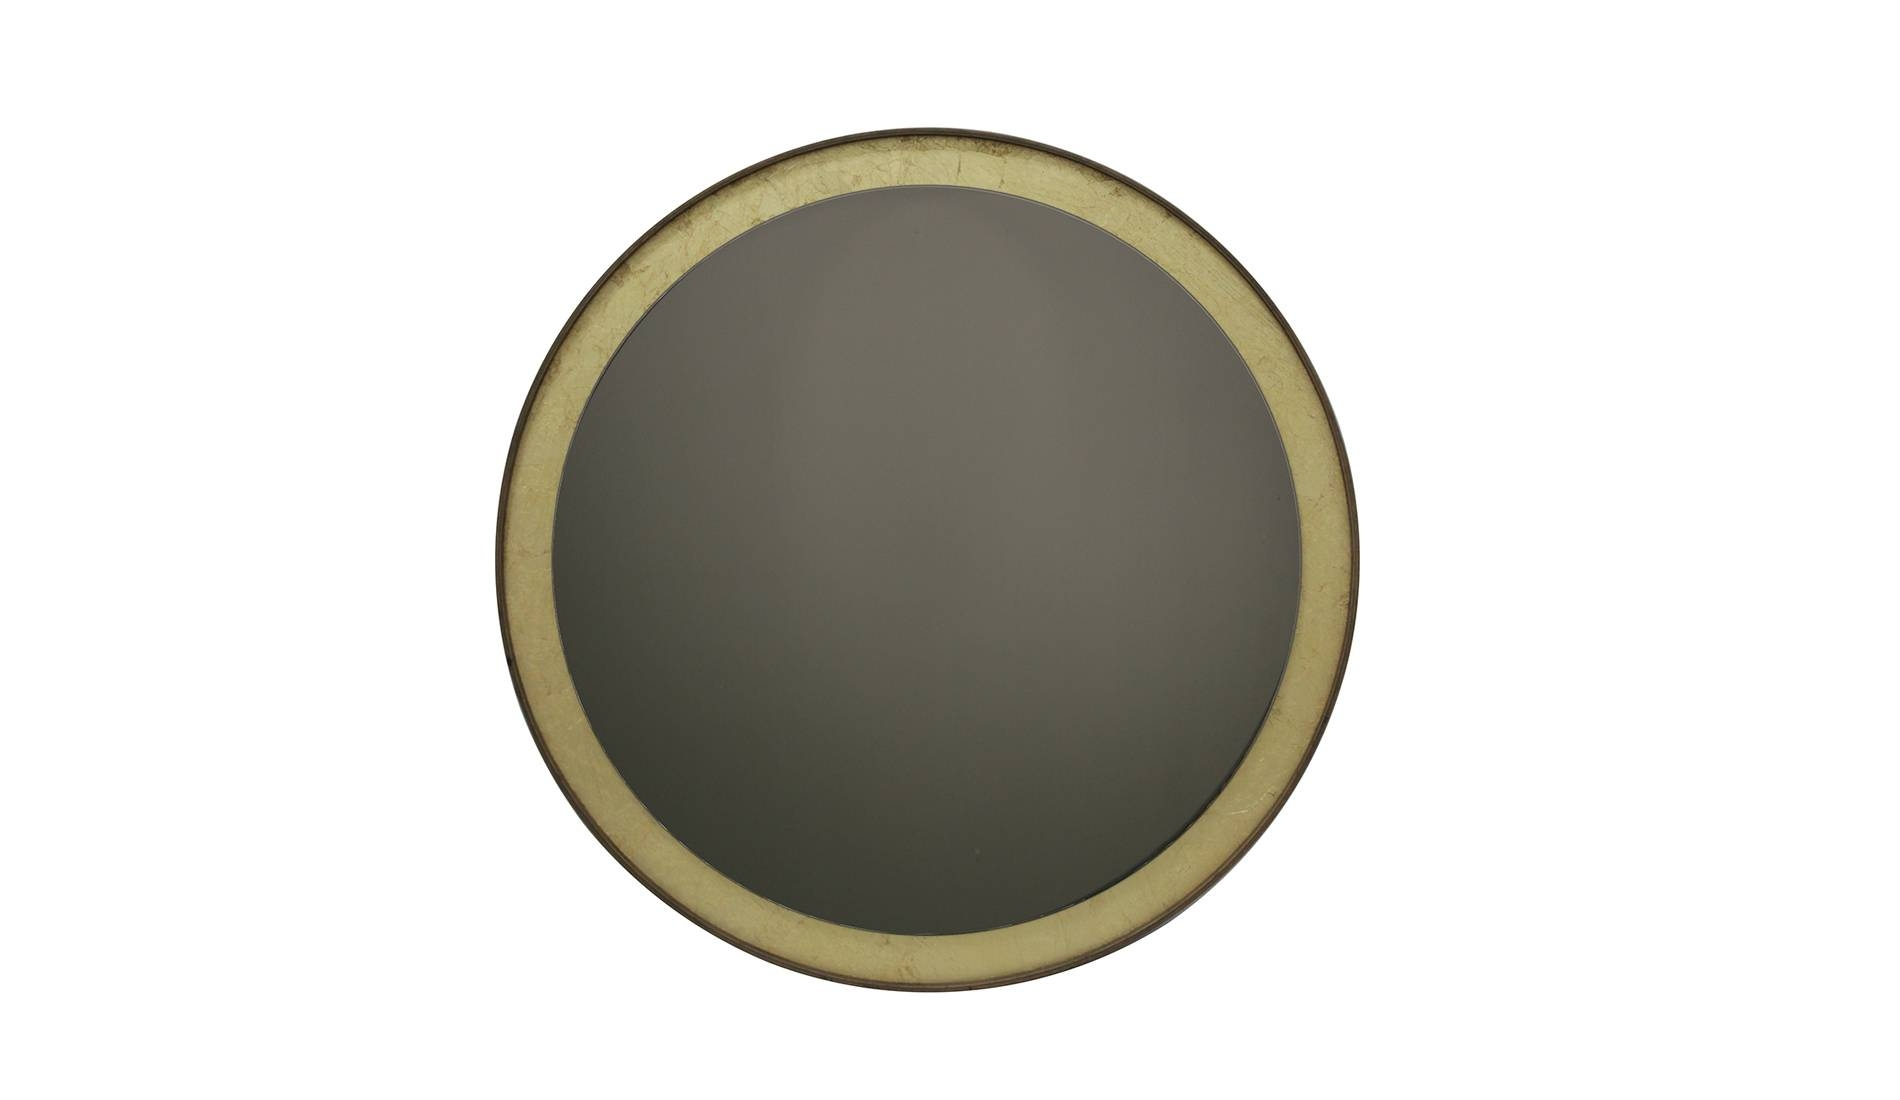 Notre Monde Gold Leaf Bronze Wall Mirror | Dopo Domani intended for Bronze Wall Mirrors (Image 12 of 25)